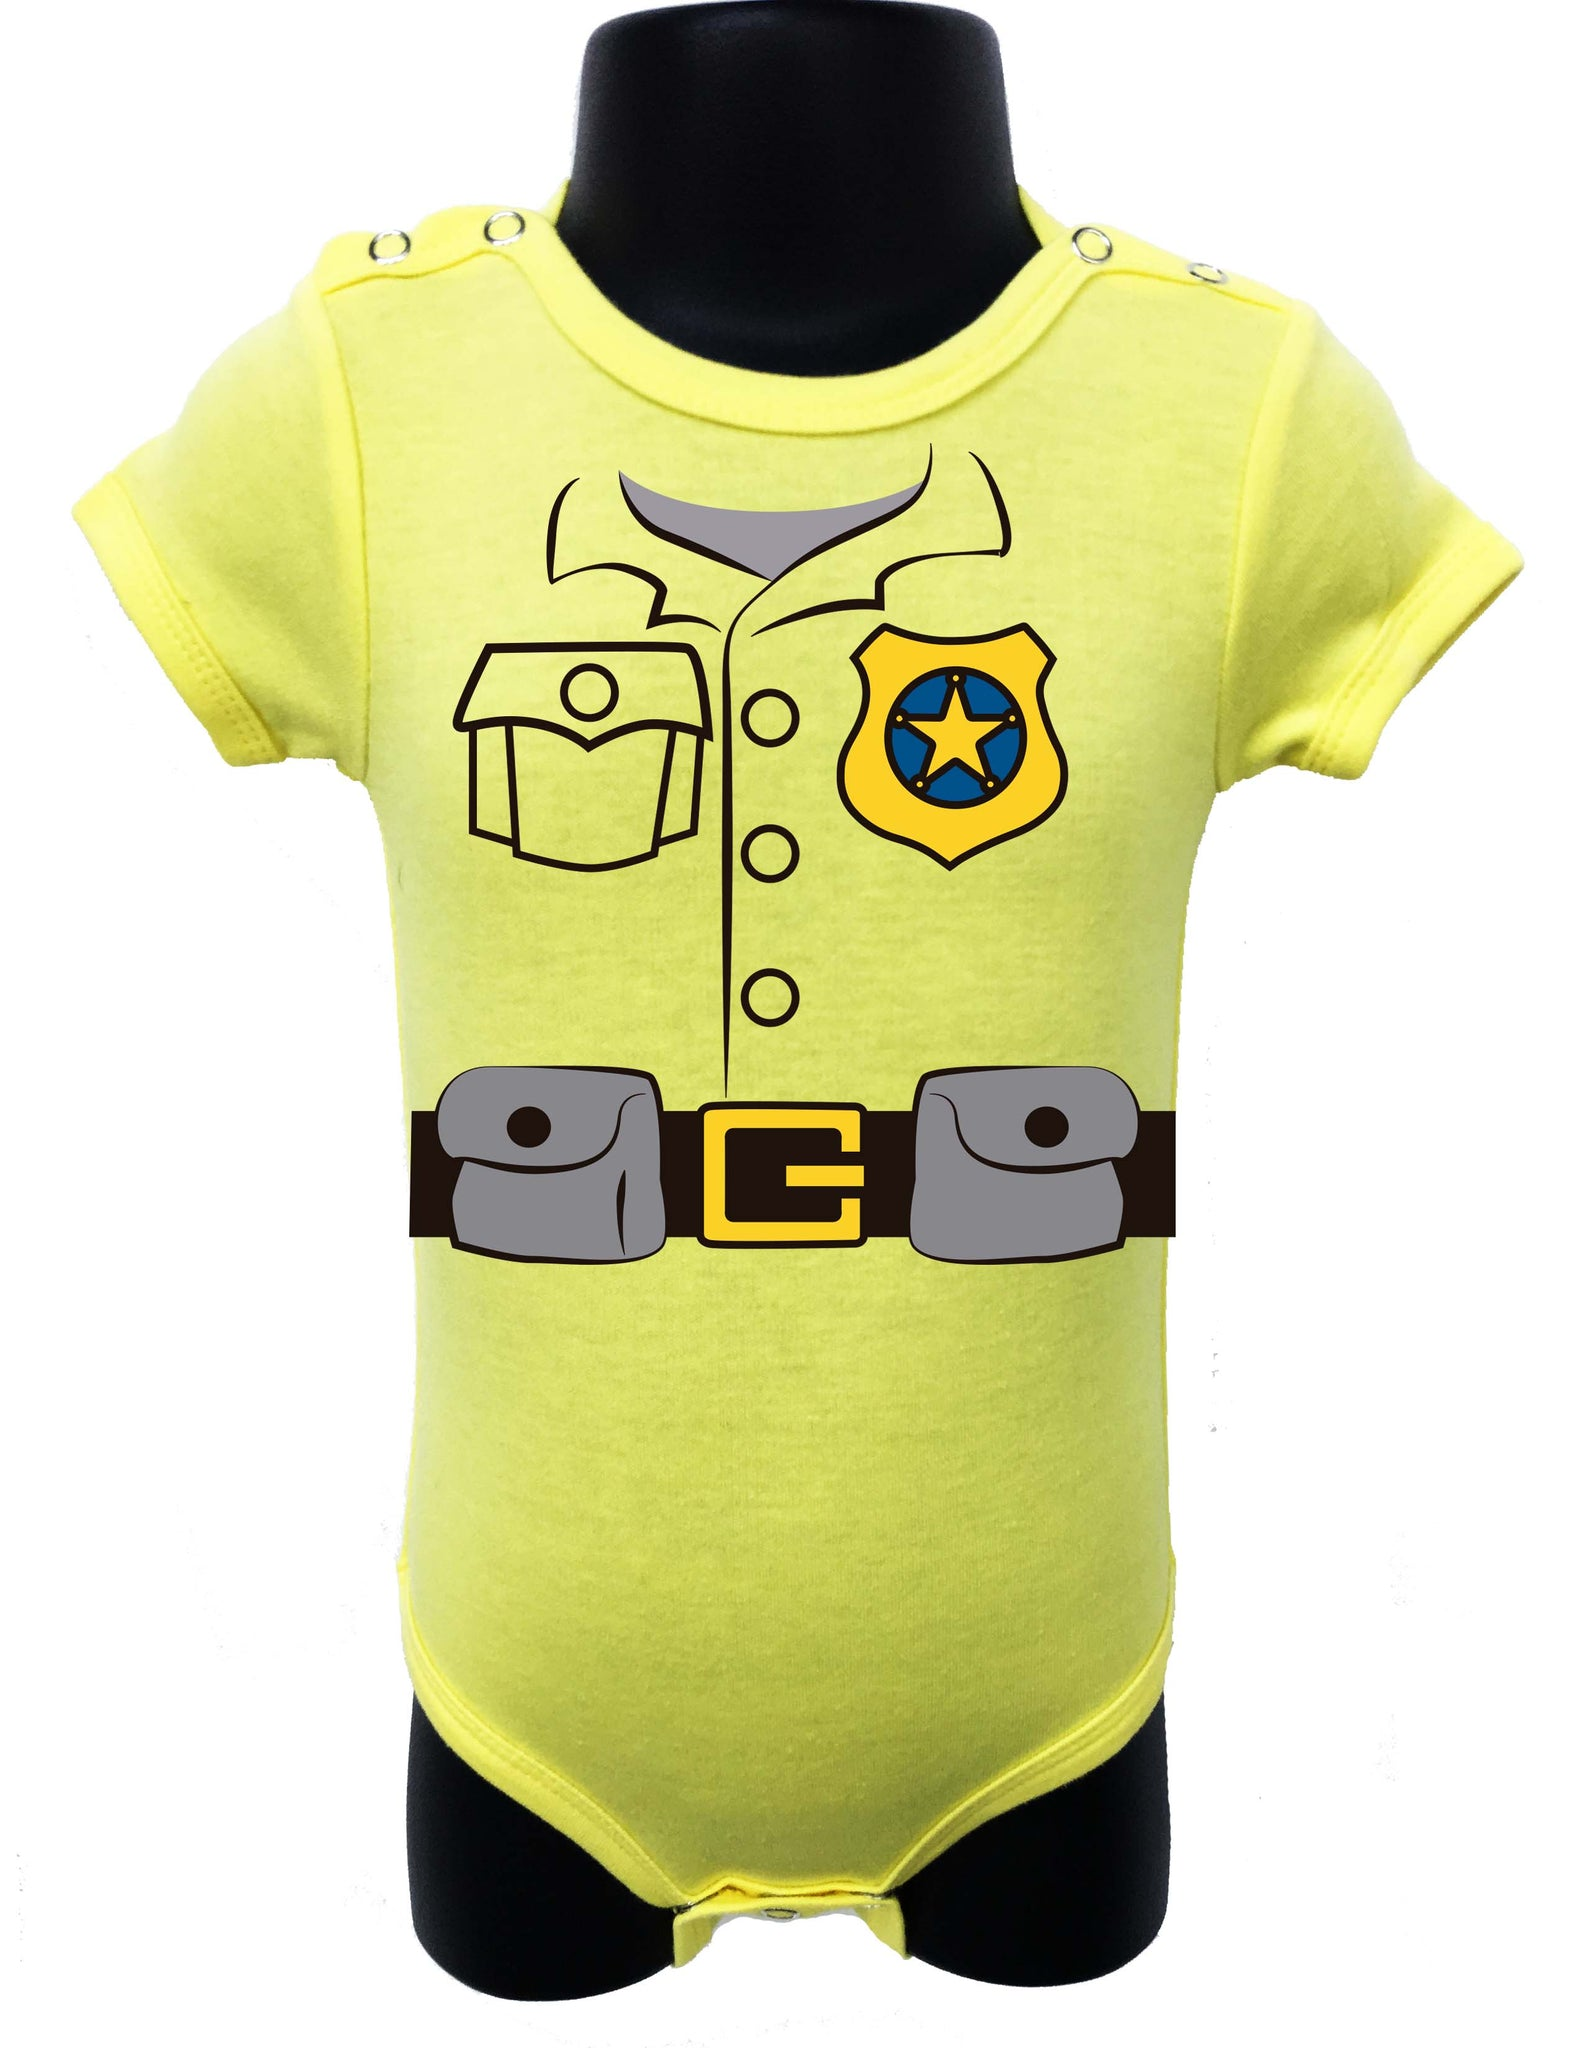 Police Job graphic design baby bodysuit – Allure & Grace